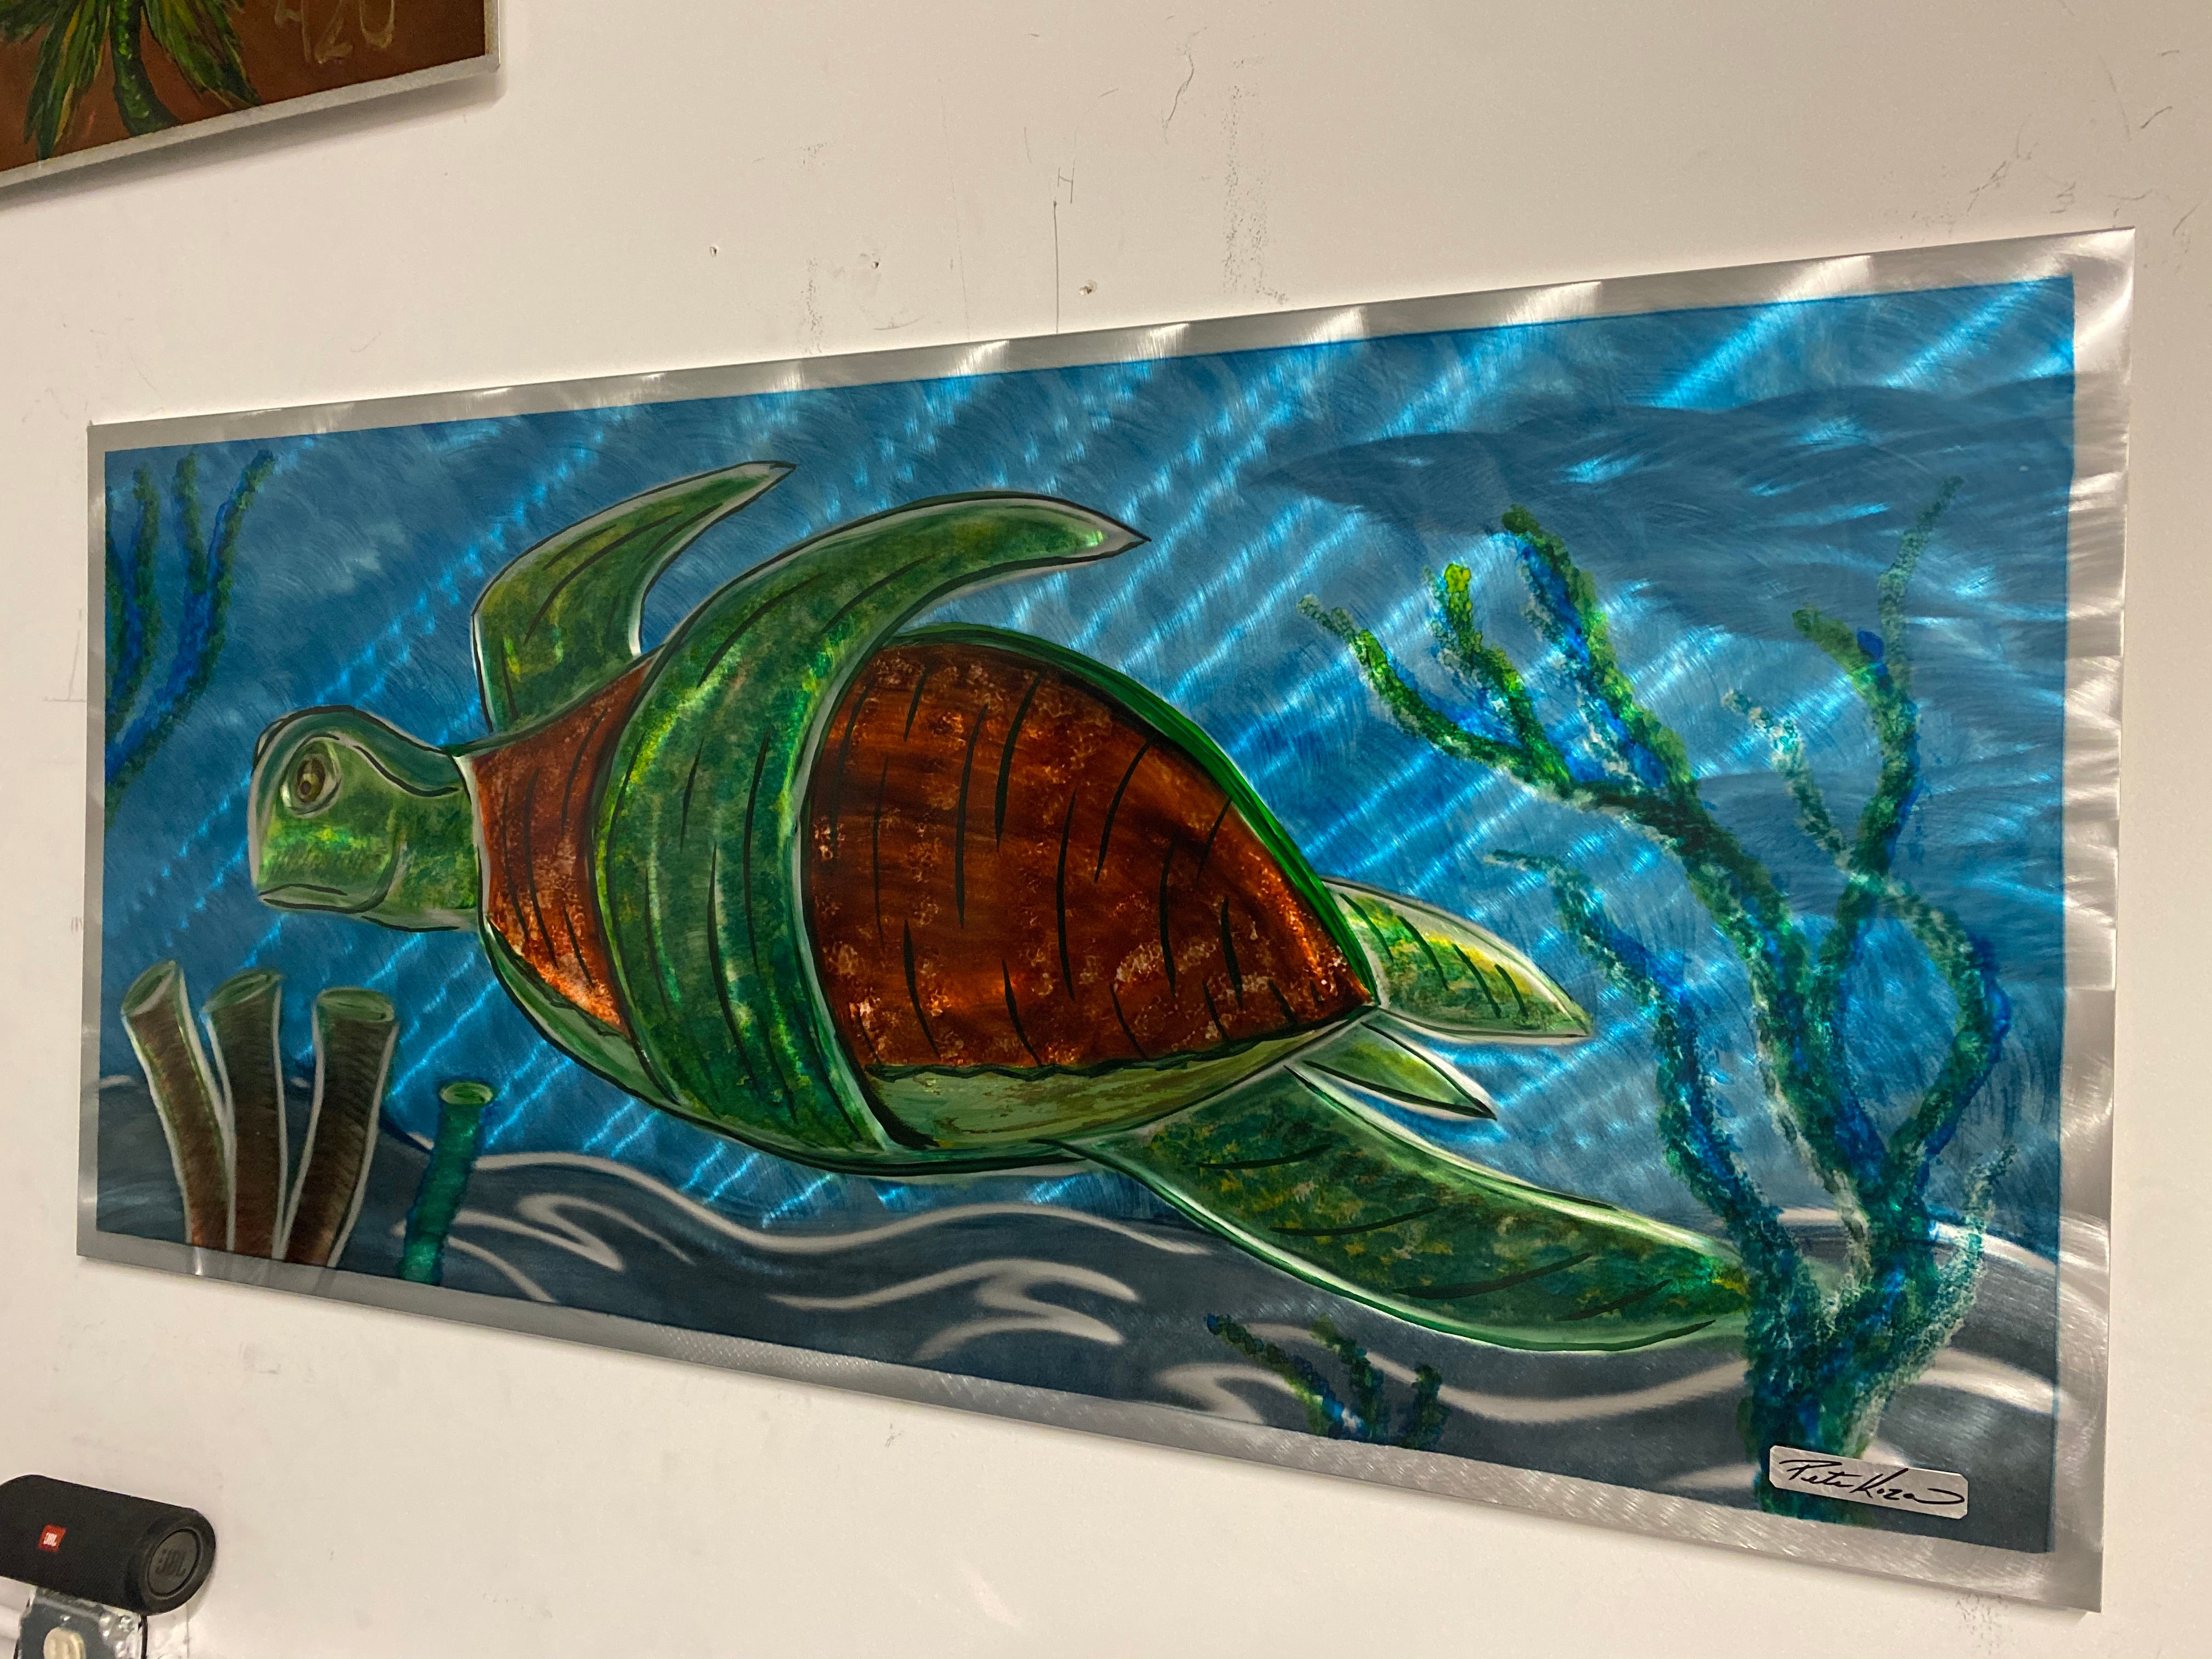 Sea Turtle 2' by 4'